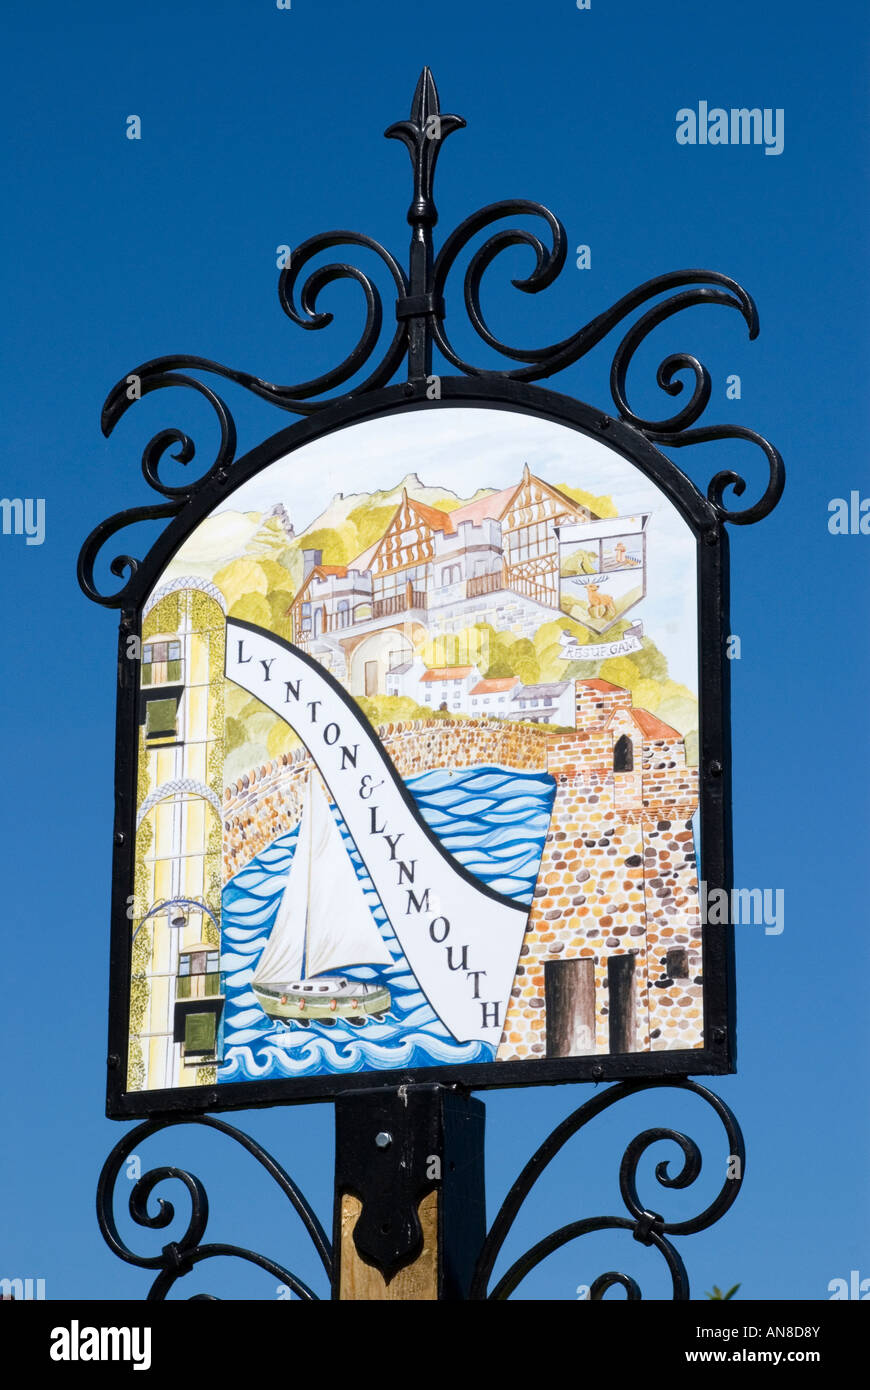 Lynton and Lynmouth pictorial sign - Stock Image